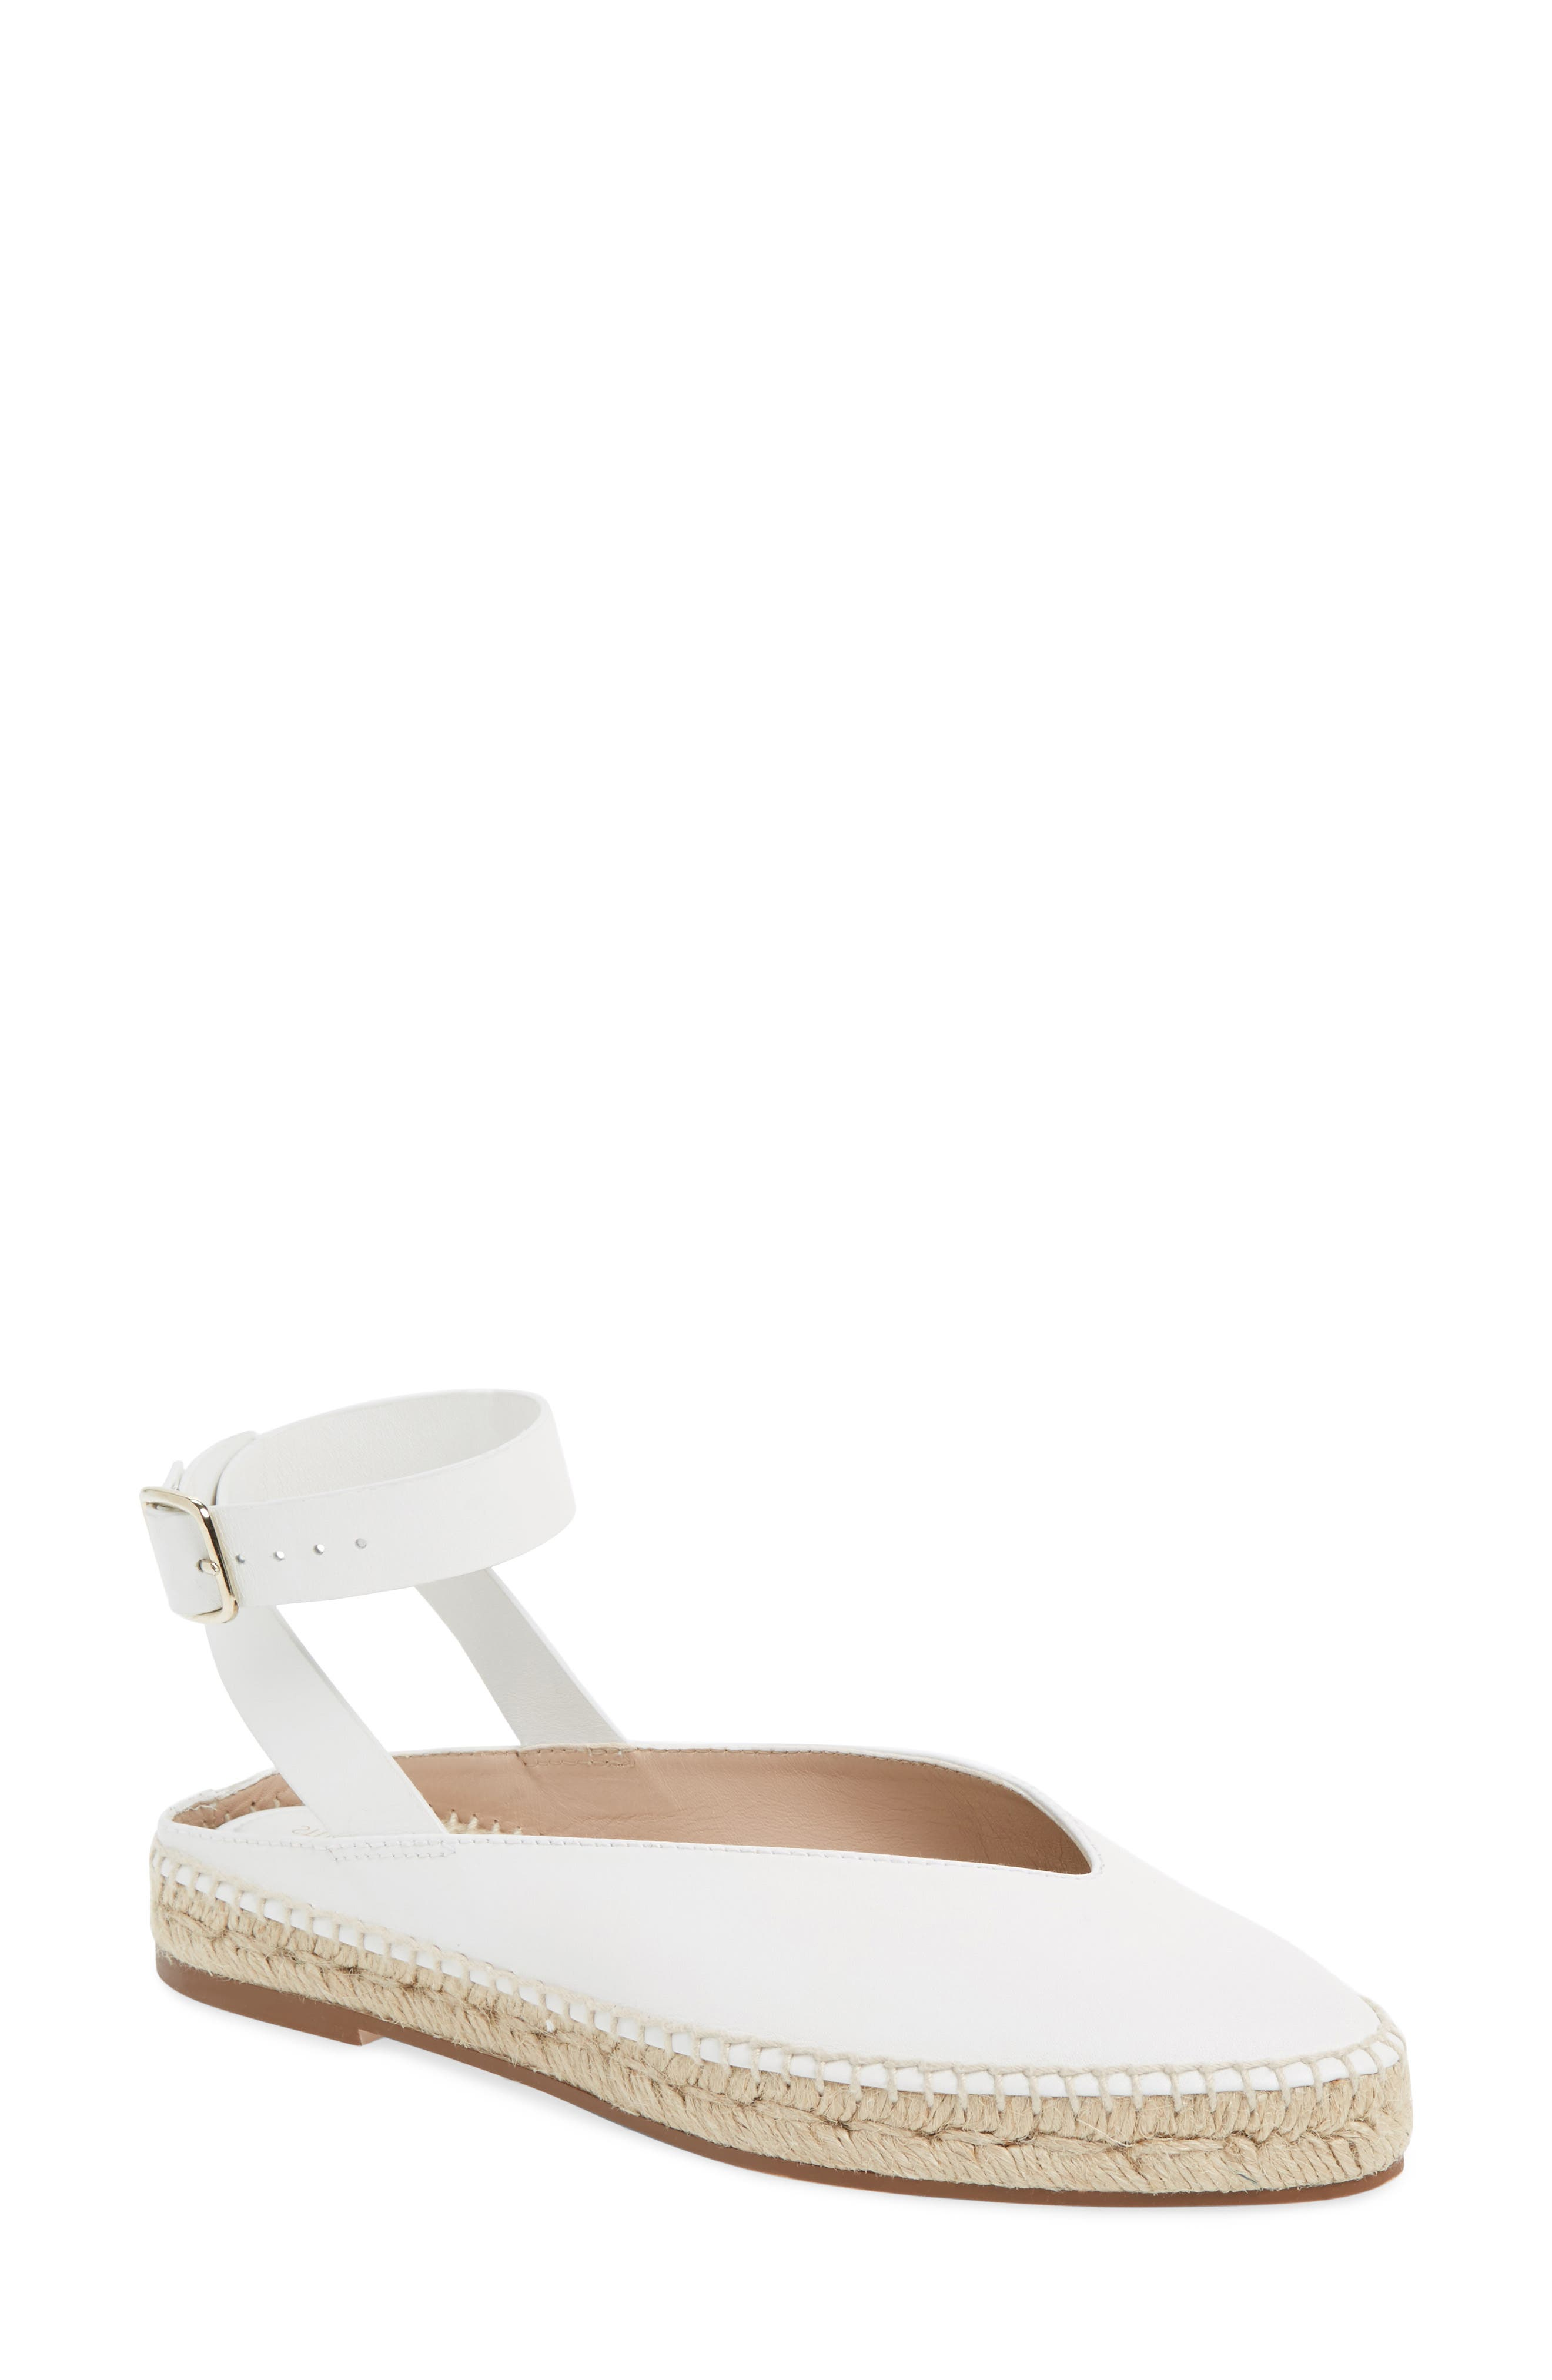 Toga Ankle Wrap Espadrille,                         Main,                         color, Off White Arizona